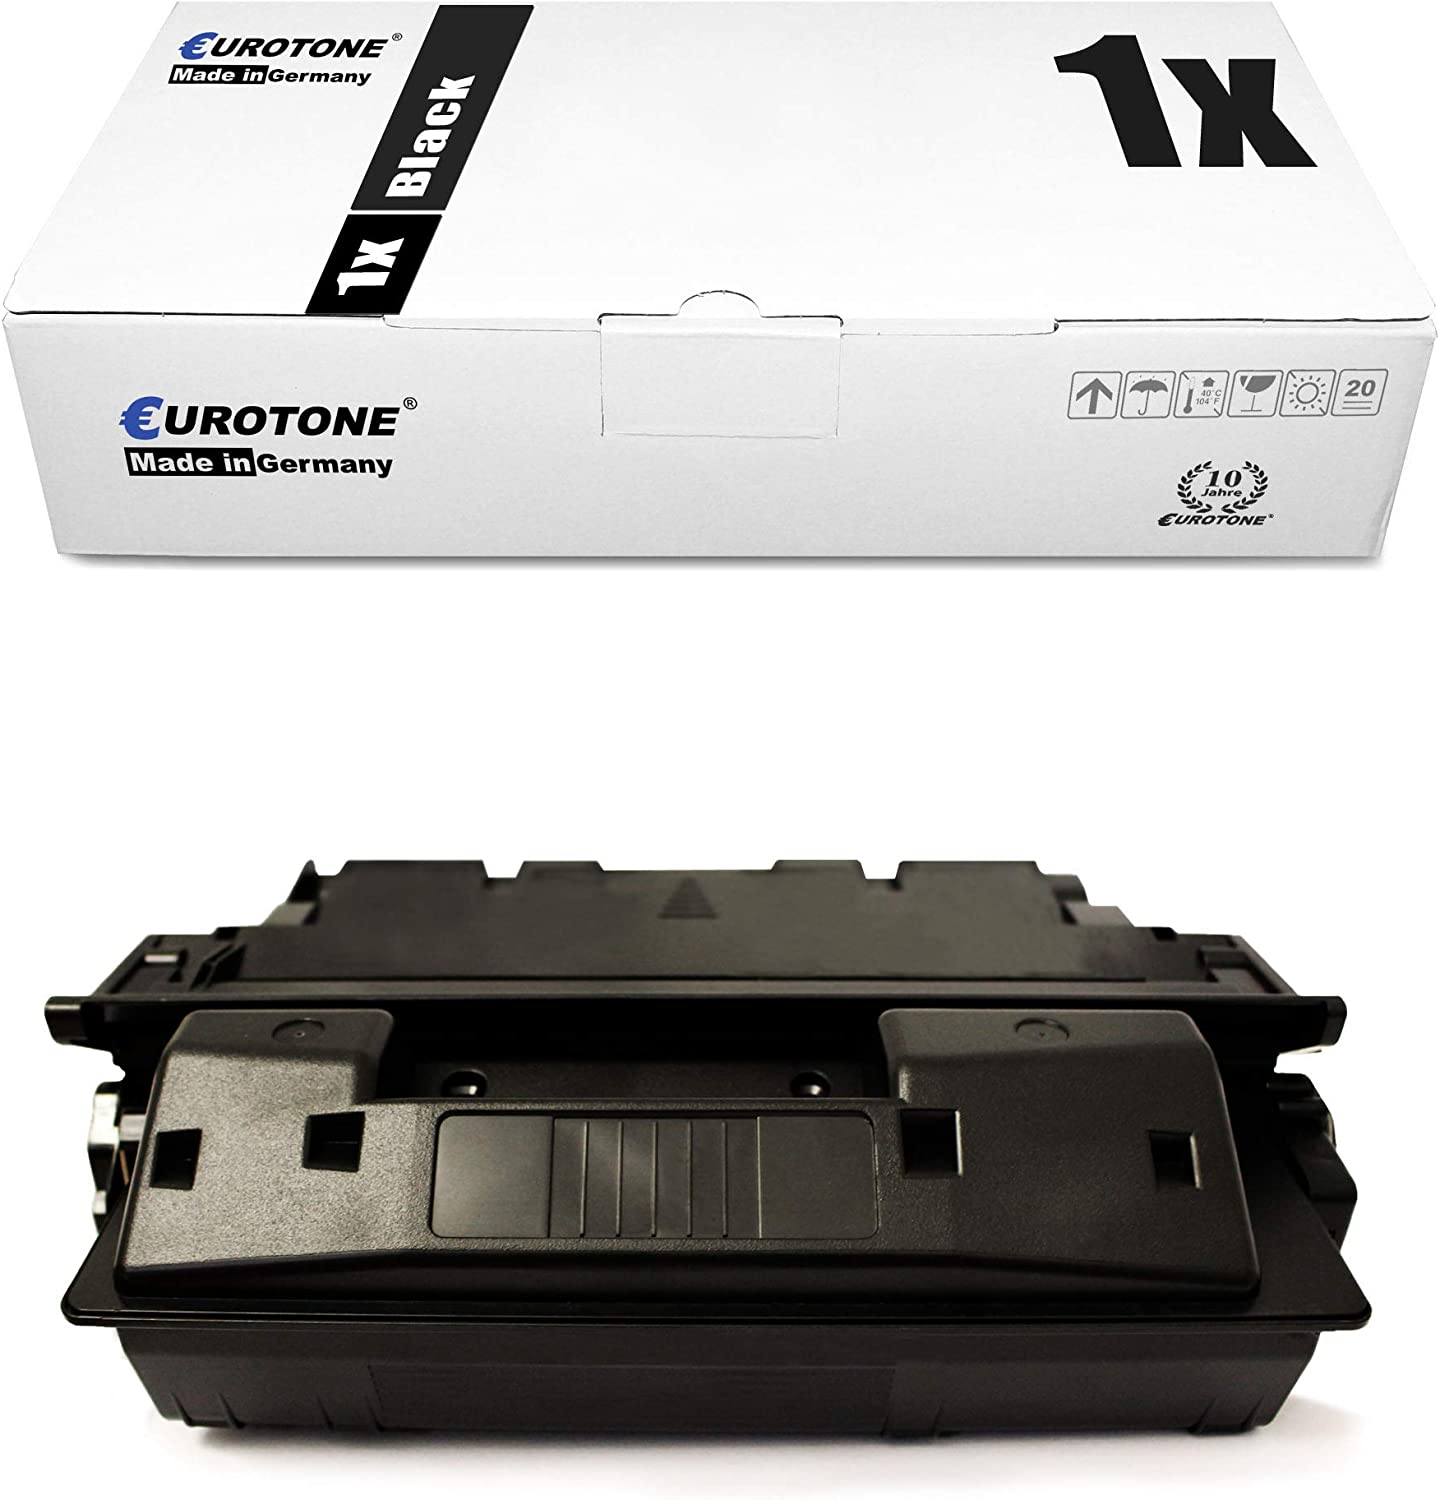 Eurotone Remanufactured Toner for HP Laserjet 2100 2200 DT XI SE D DSE DN TN M DTN Replaces C4096A 96A